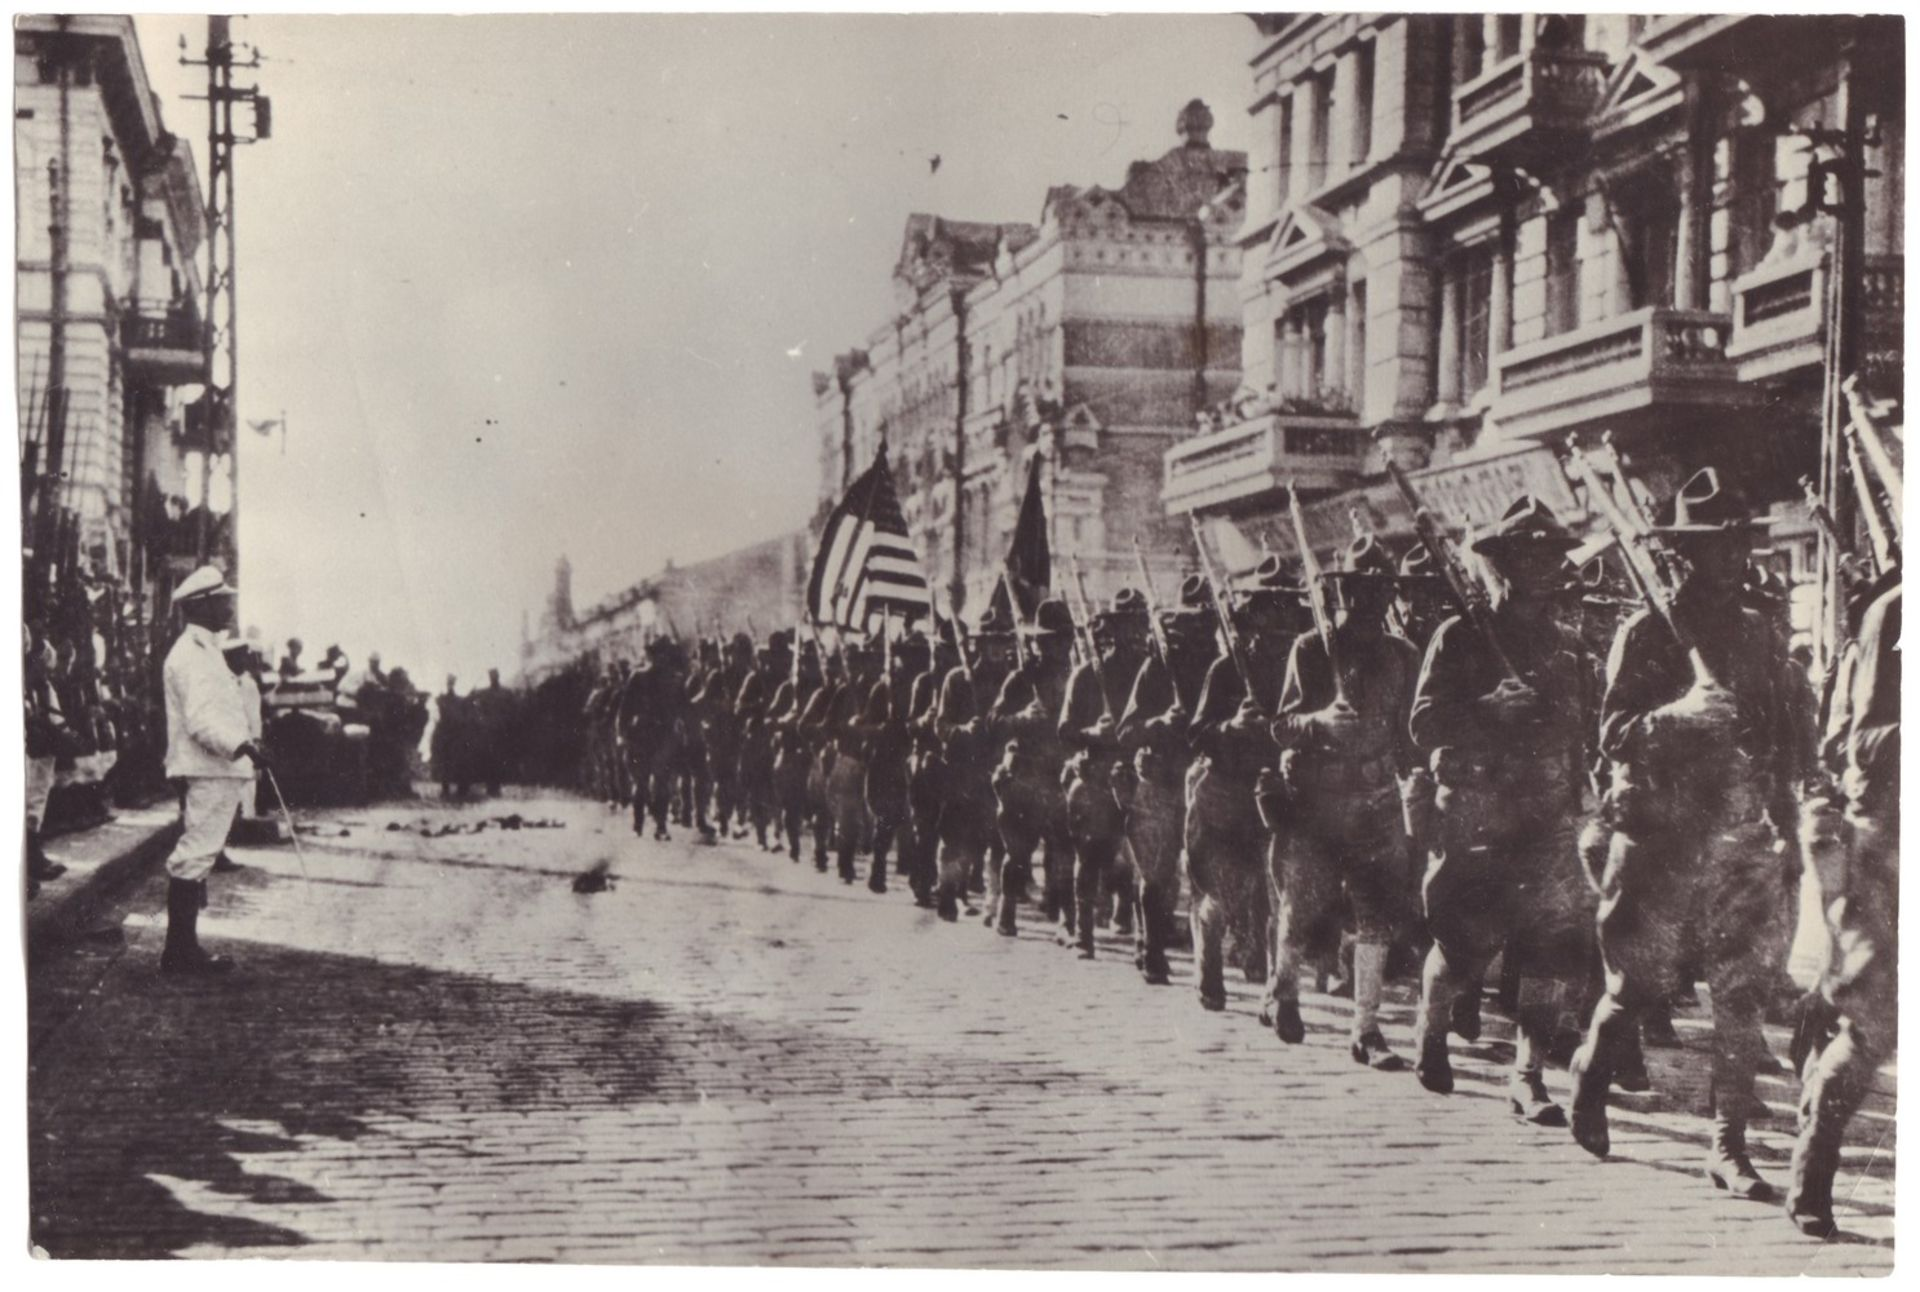 Civil war and intervention. 17 photographs. 1917-1922. Late prints 1950s-1970s. From 16x11,7 to - Bild 4 aus 5